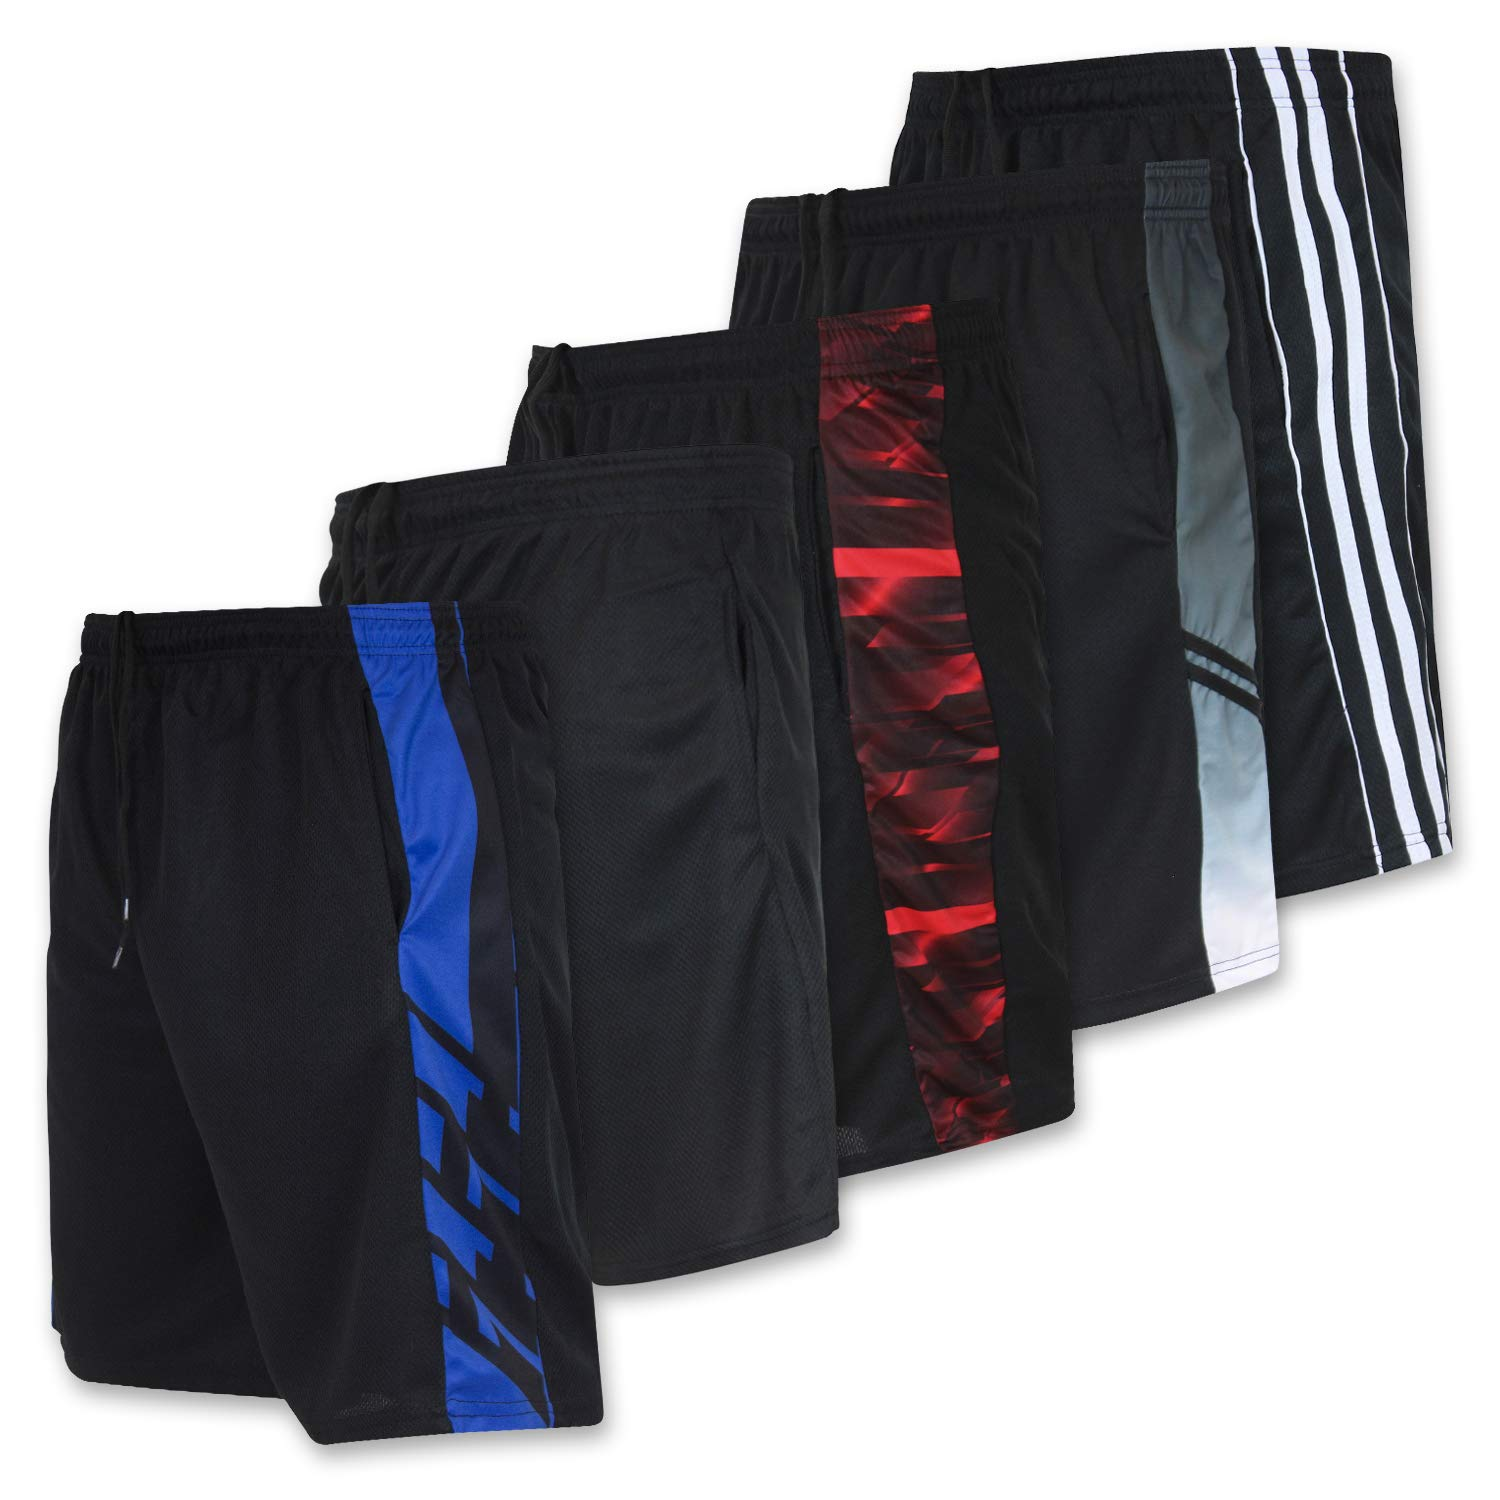 Men's Active Athletic Basketball Essentials Performance Gym Workout Shorts with Pockets - Set 8-5 Pack, S